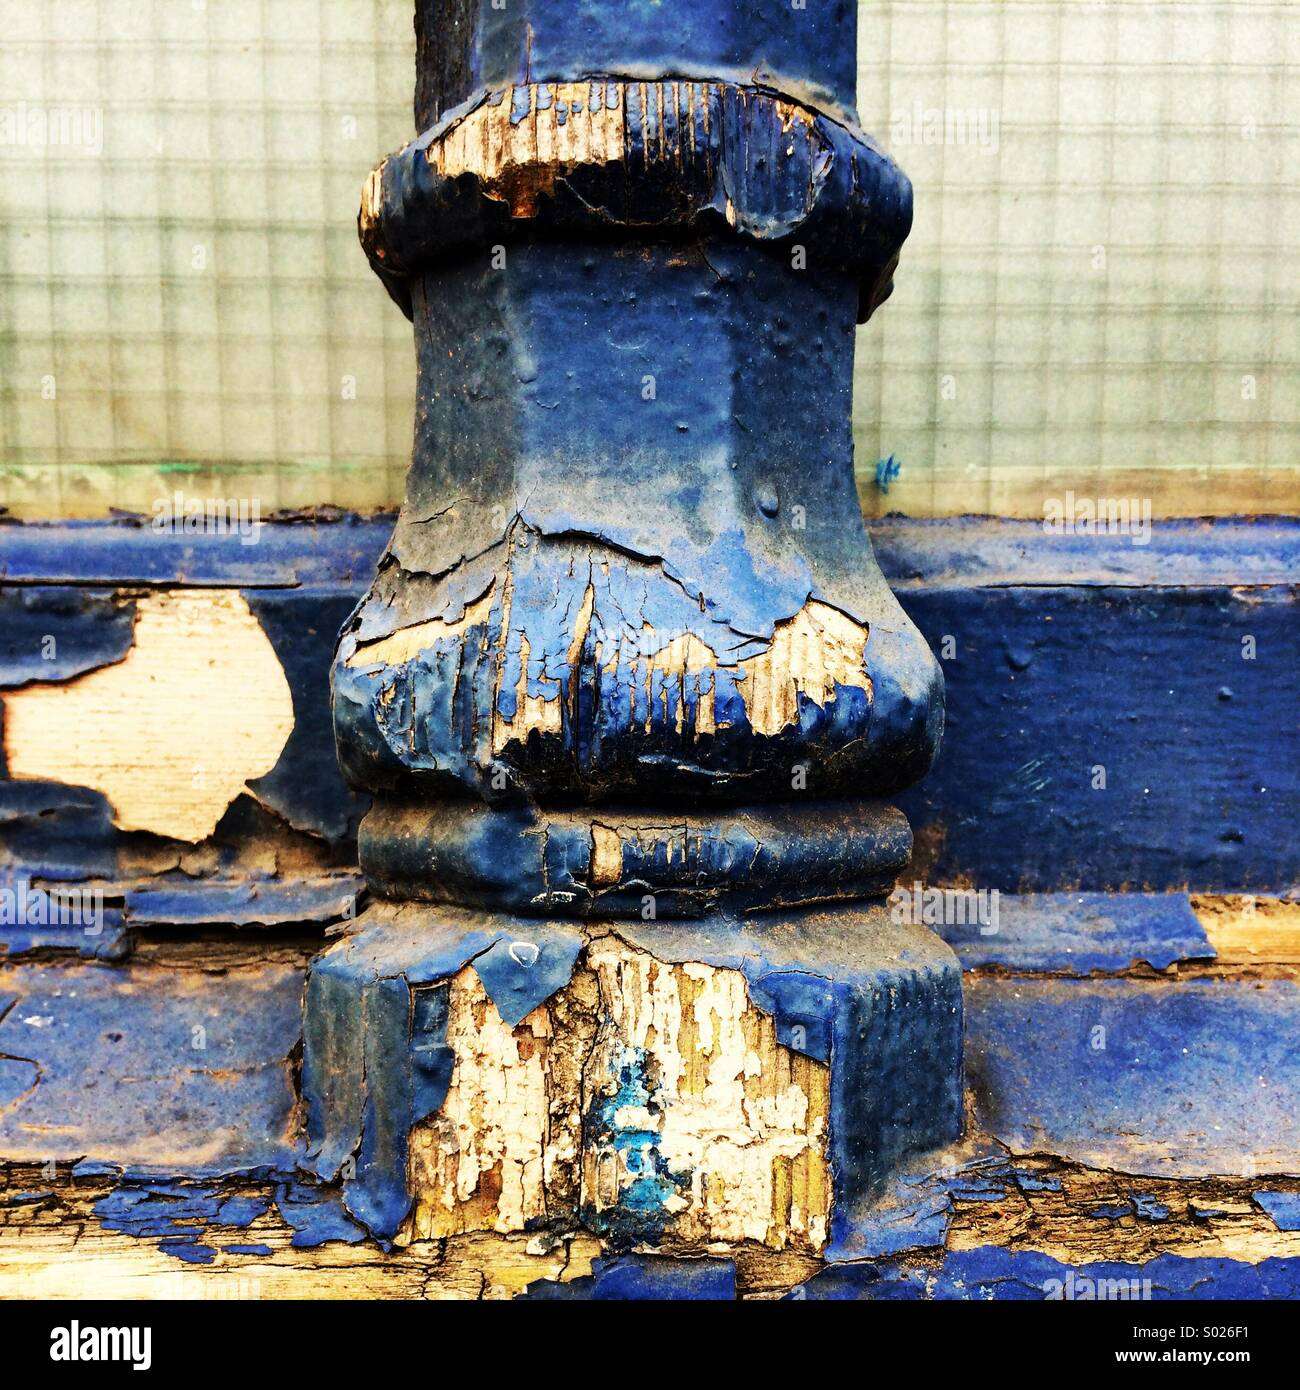 Peeling and flaking blue paint on an ornate window frame. - Stock Image